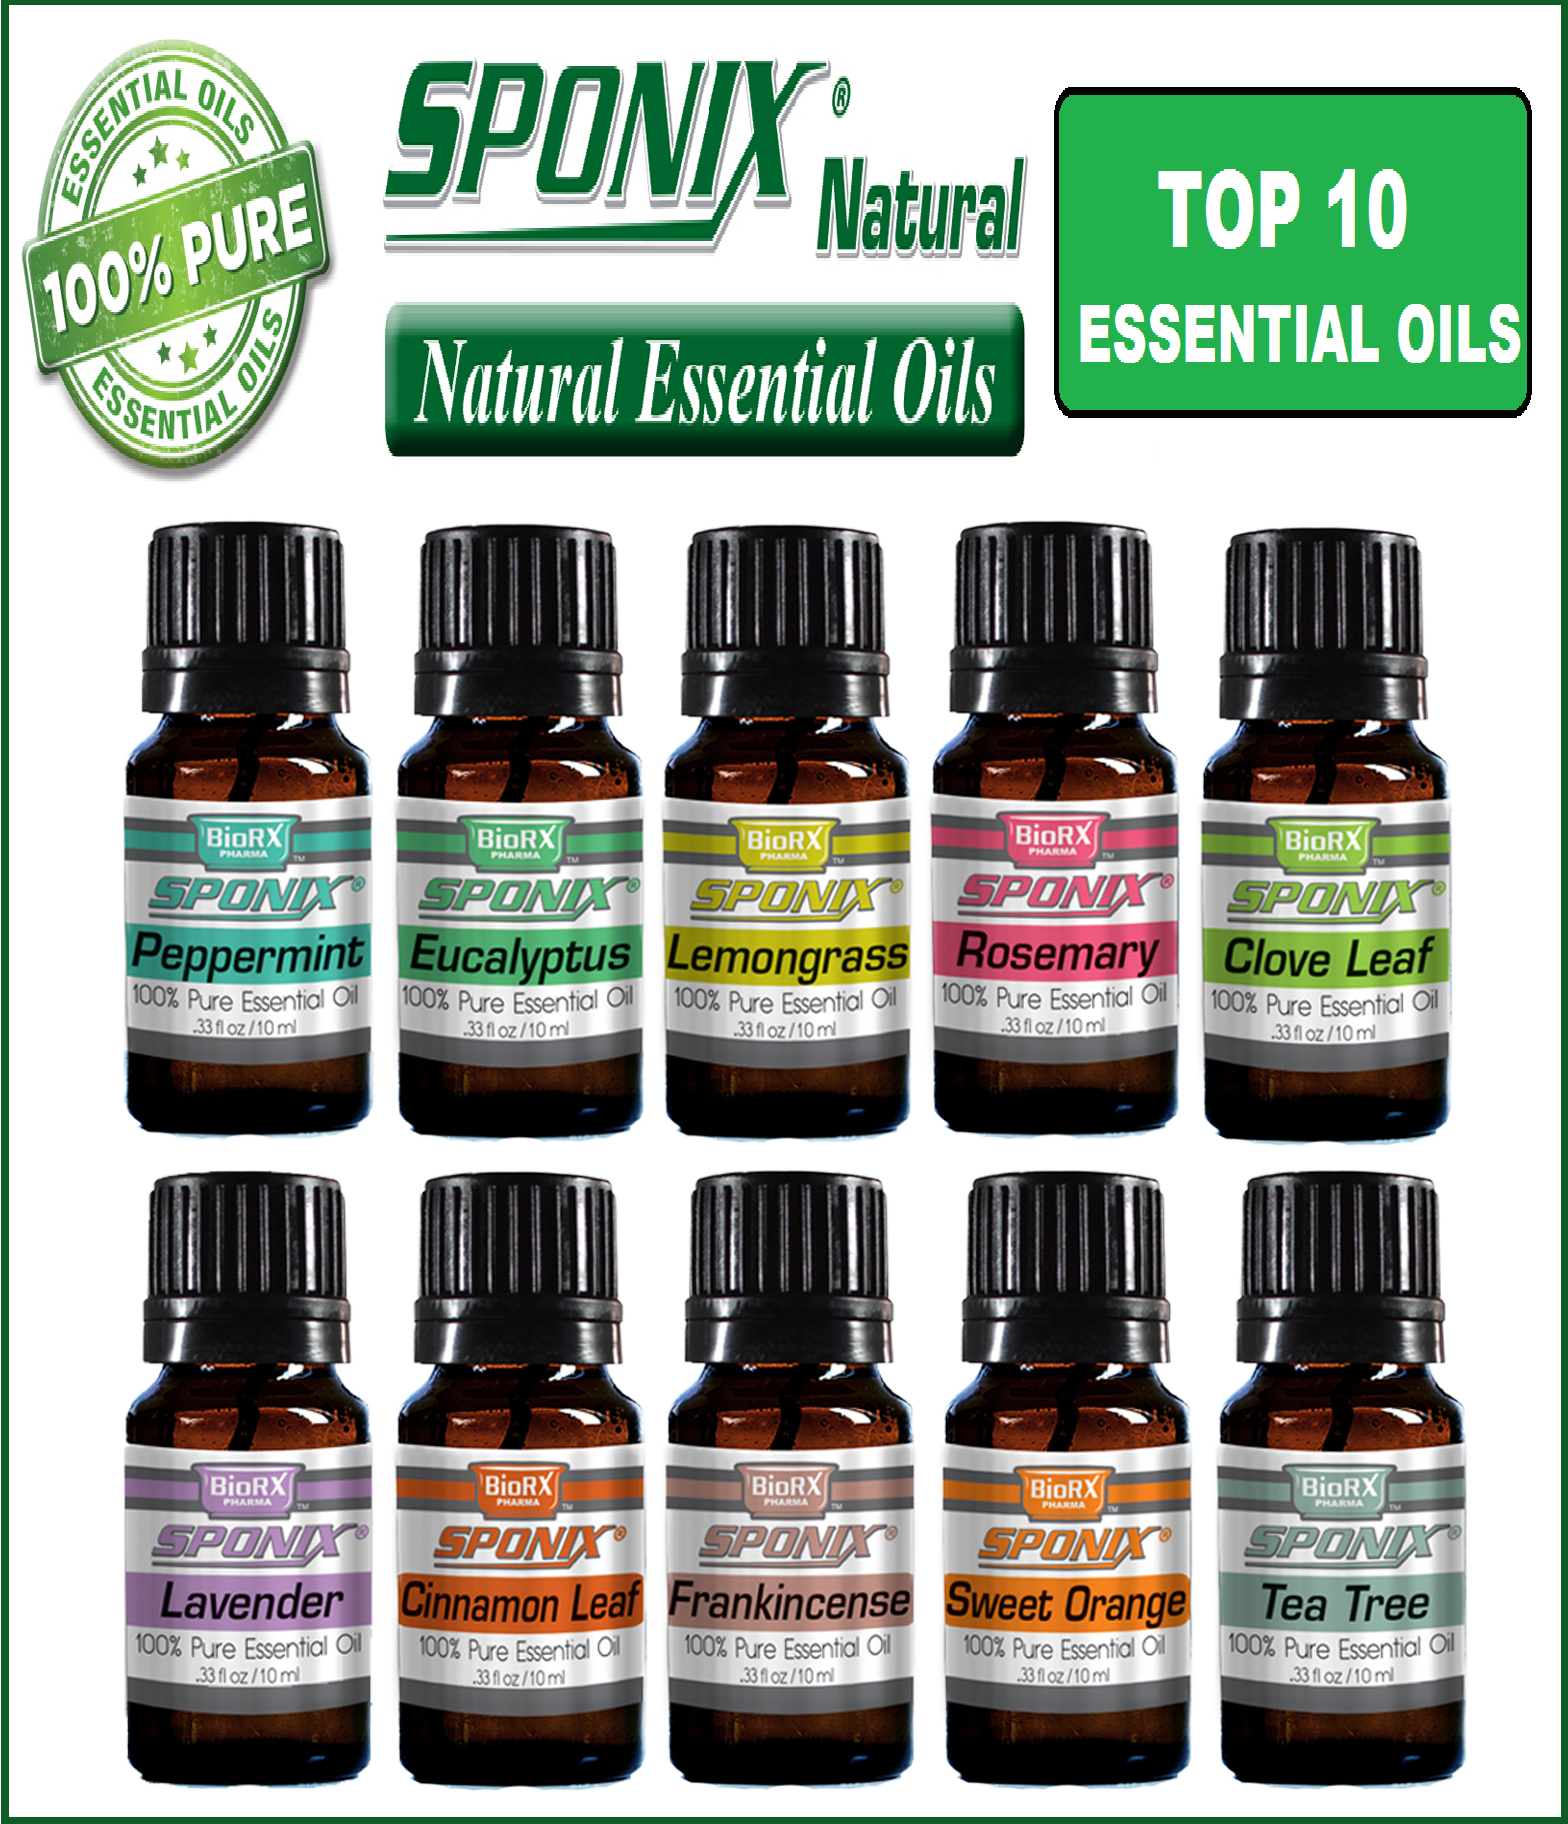 Aromatherapy Sponix Top 10 Essential Oils - 10 ml - 100% Pure & Natural (Peppermint, Eucalyptus, Lemongrass, Rosemary, Lavender, Cinnamon...